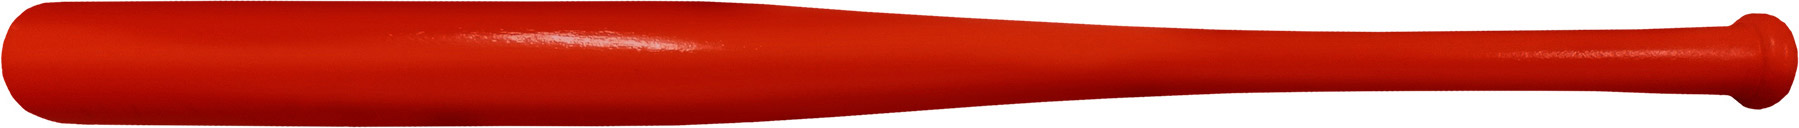 novelty red baseball bat souvenir baseball bat